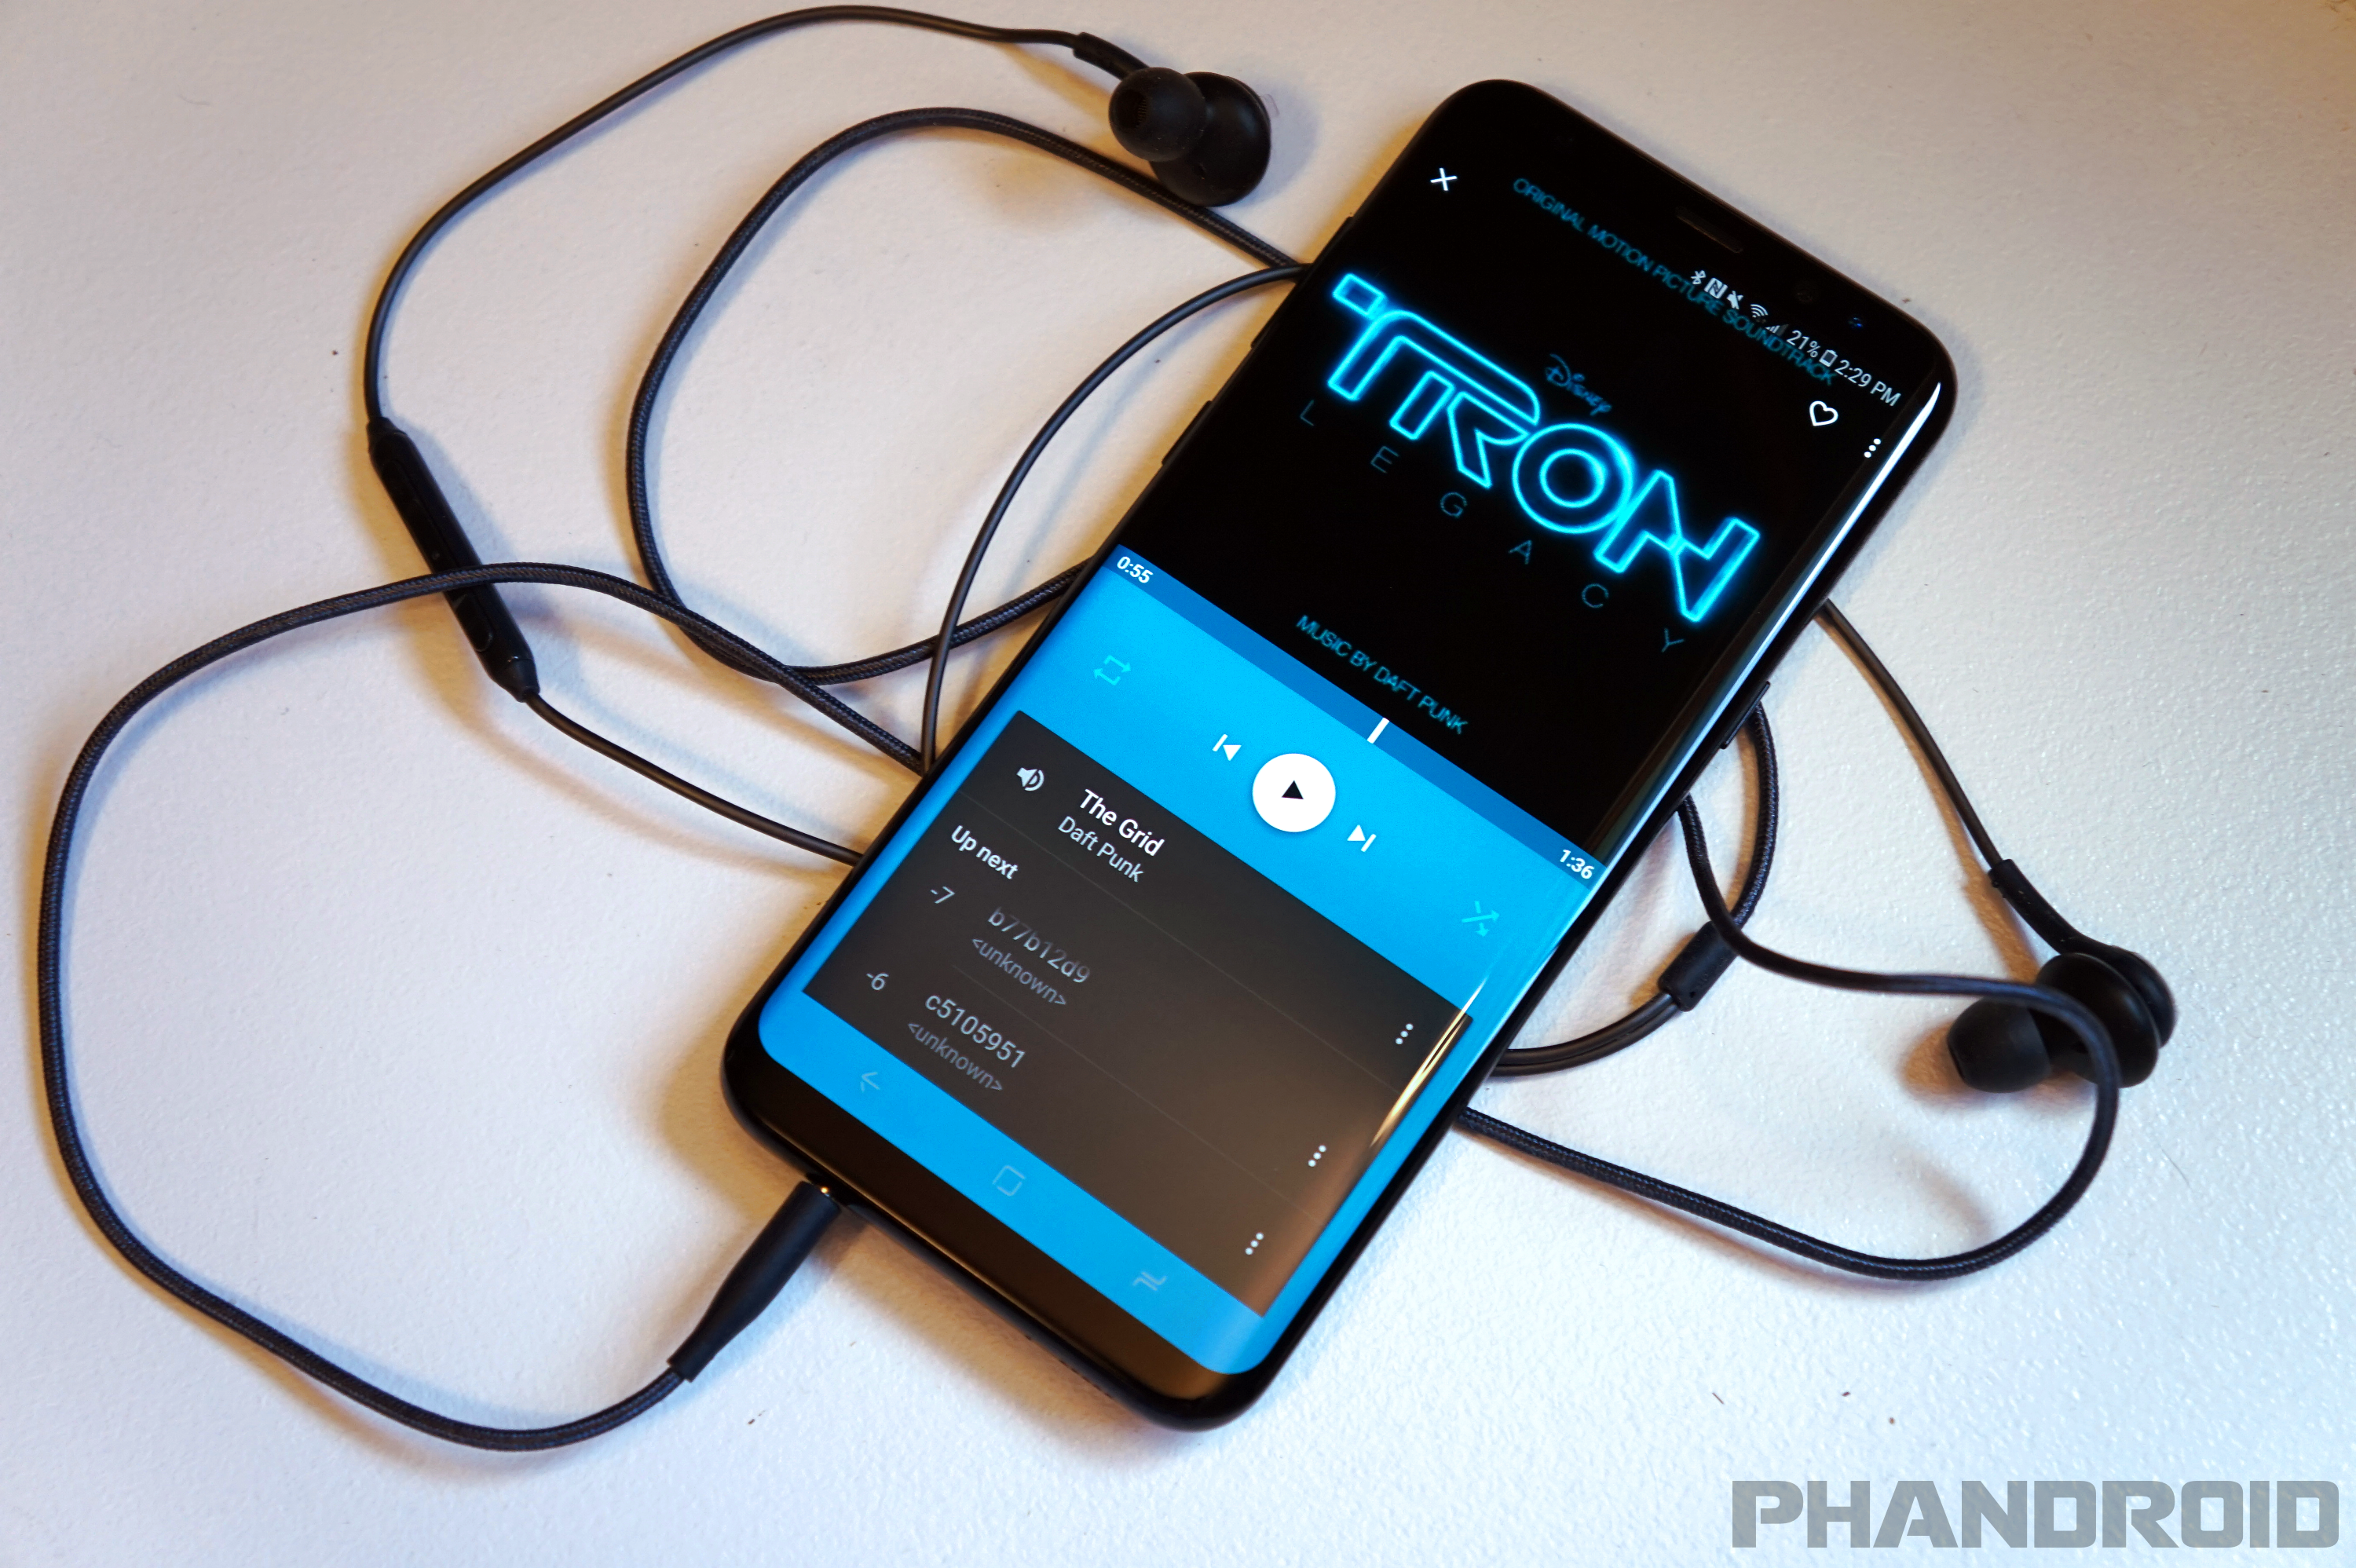 How to turn your old Android phone into a standalone music